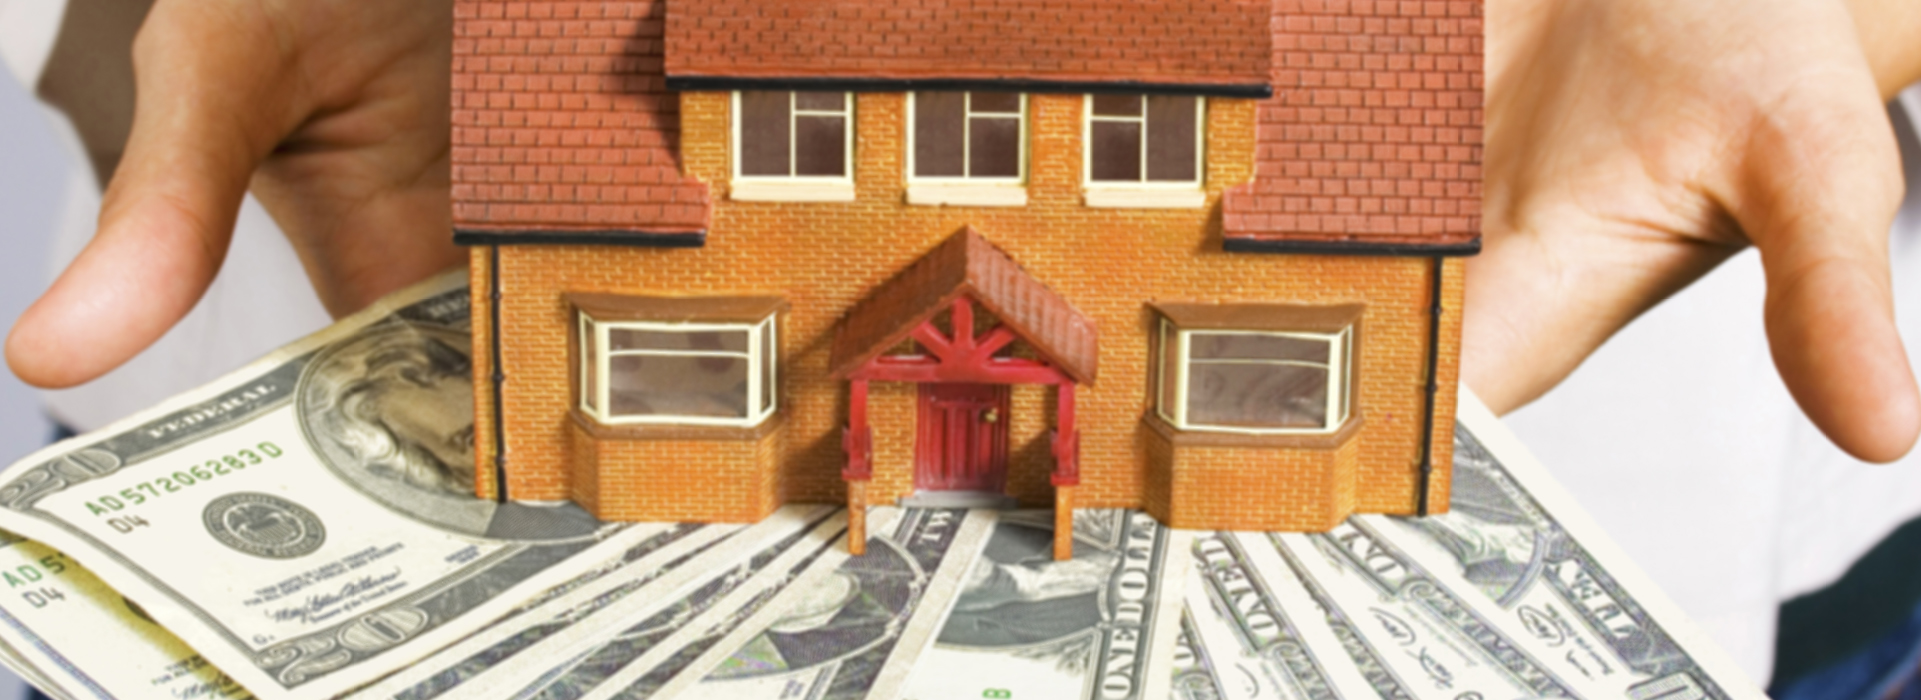 Delivering more choices as your mortgage partner